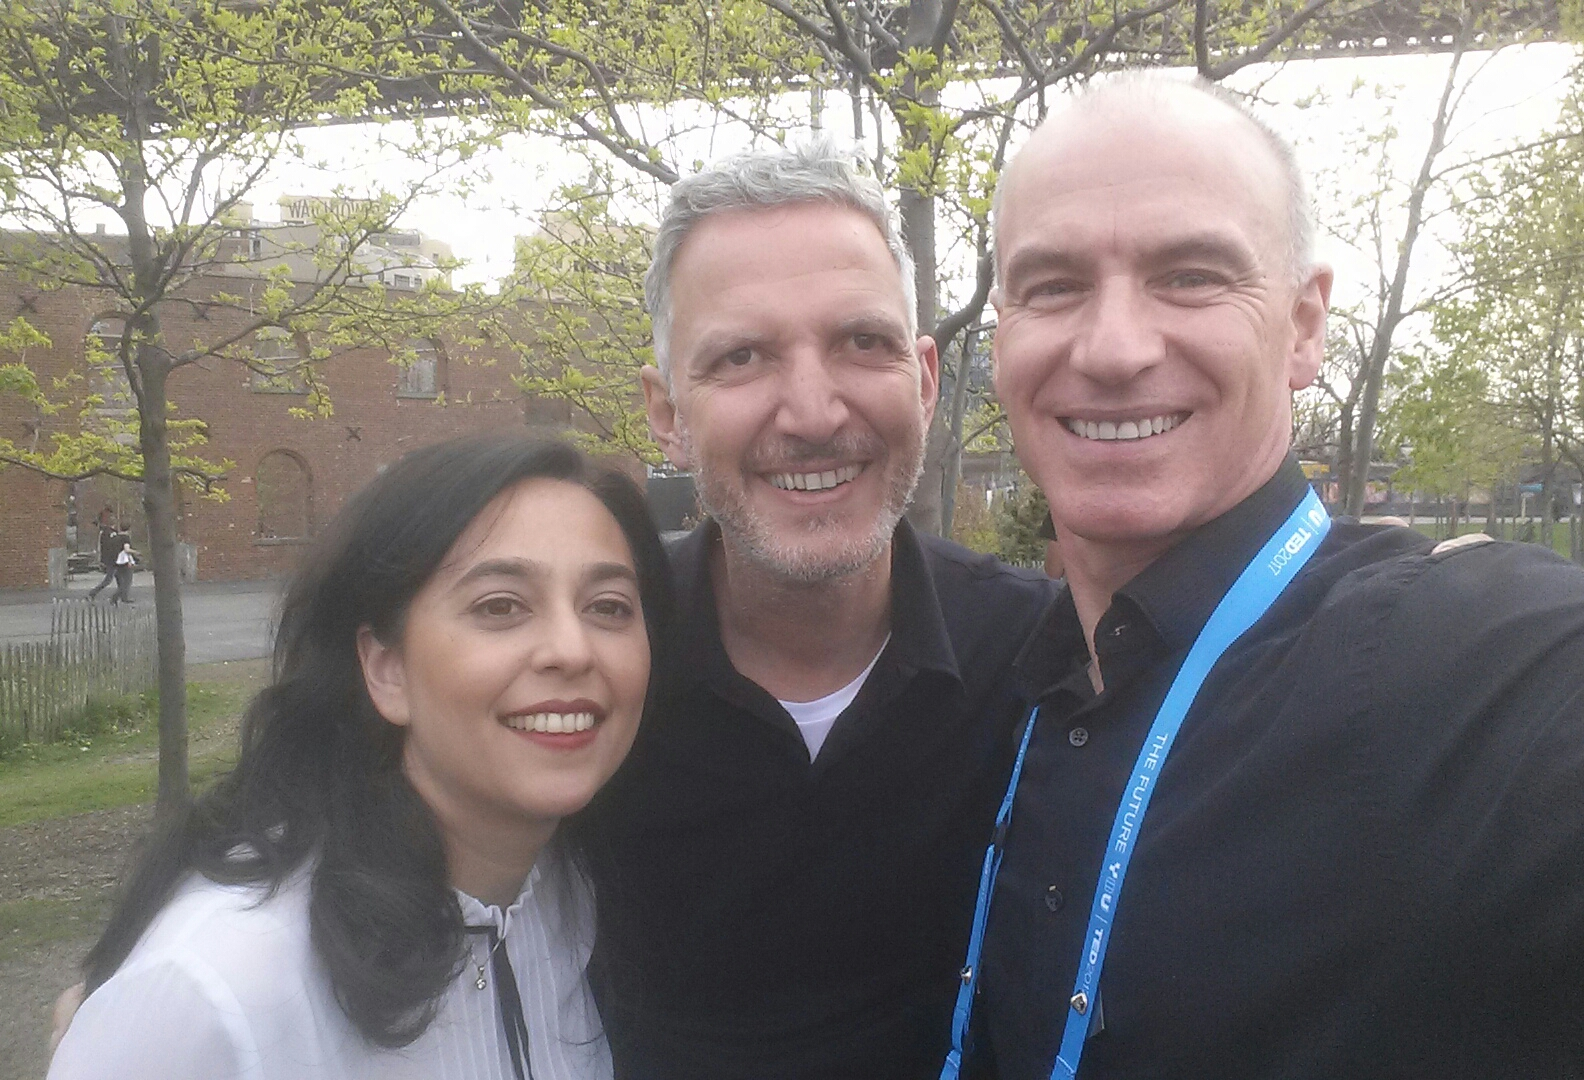 (Left to right) Salome Heusel (TED's Deputy Director of TEDx), Jay Herrati (TED's Executive Director of TEDx), and Bob Vasile at TEDFest 2017